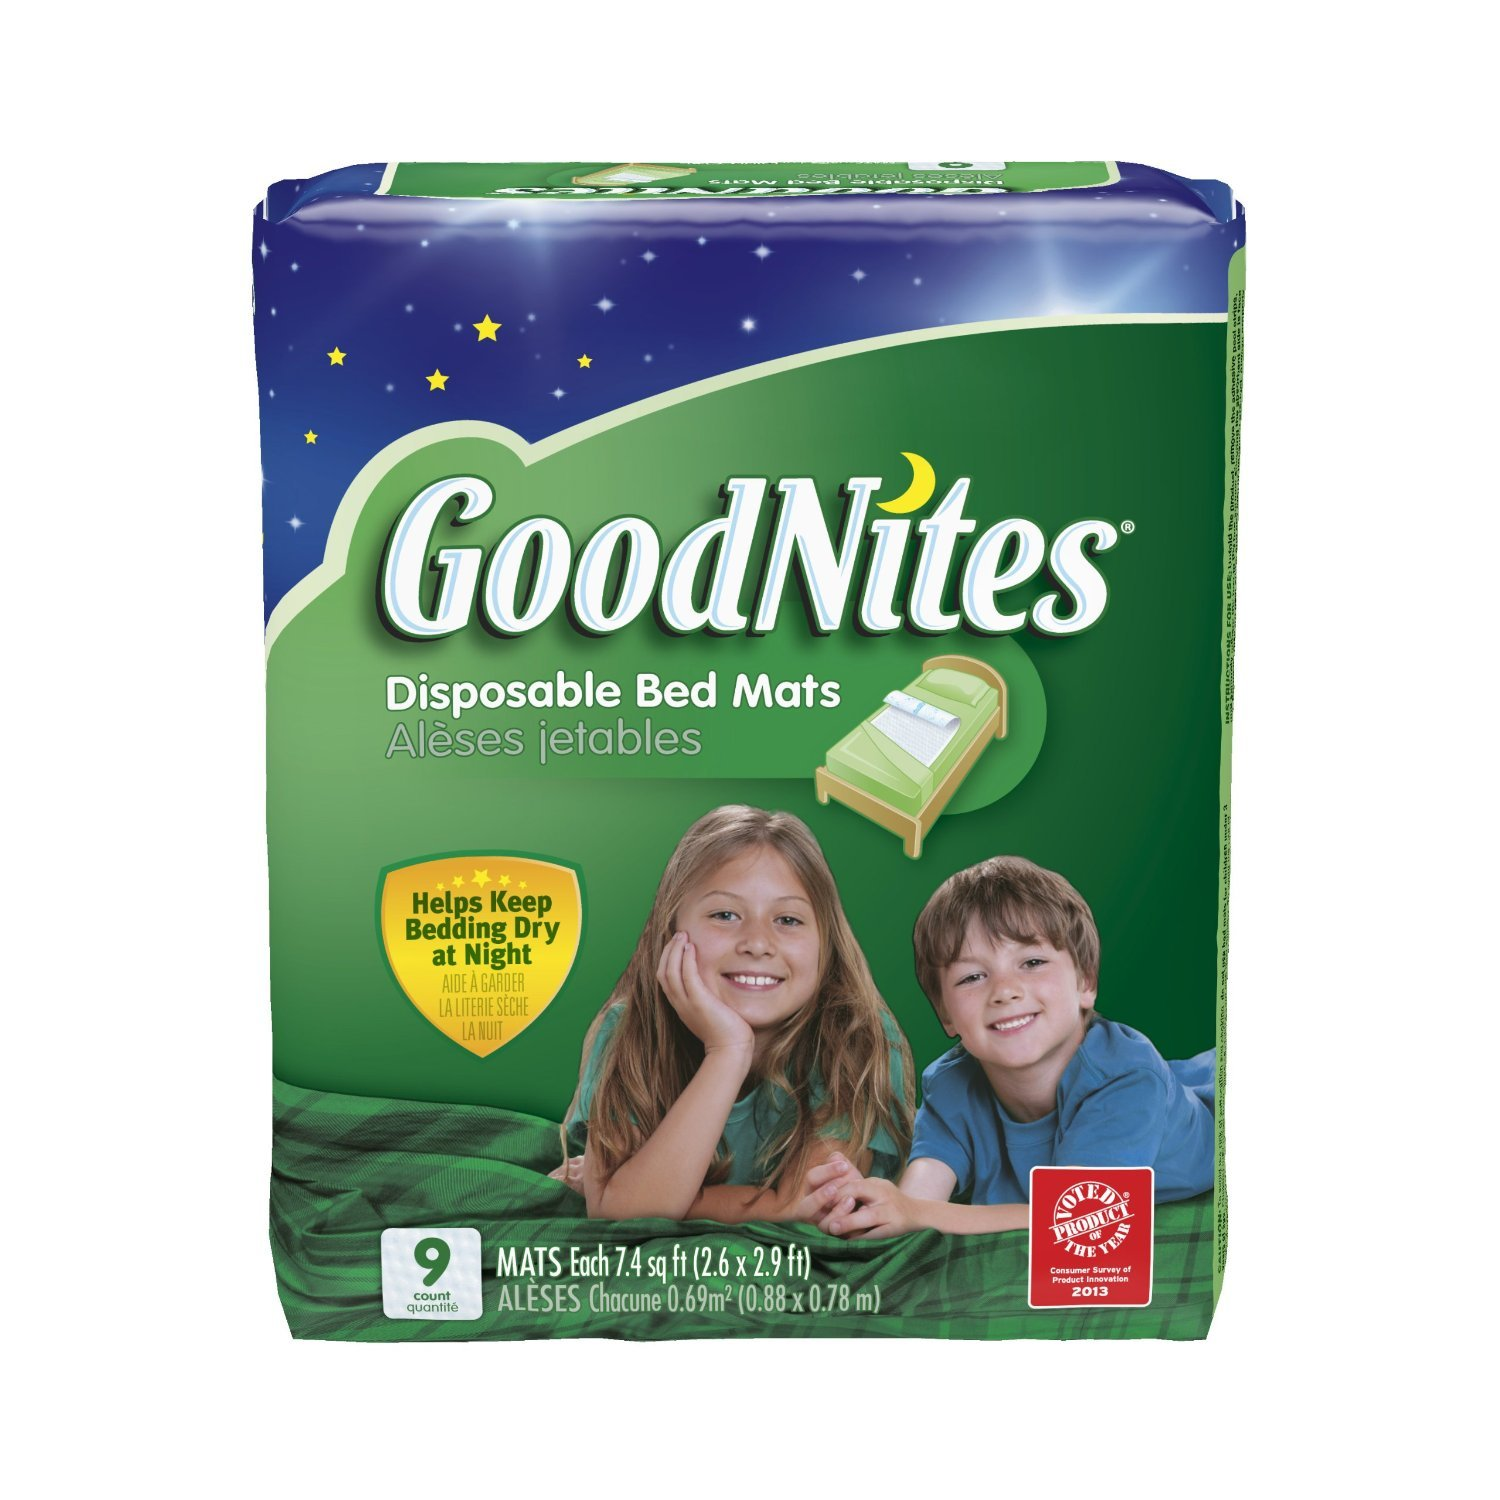 Goodnites Disposable Bed Mats (72 Matts)